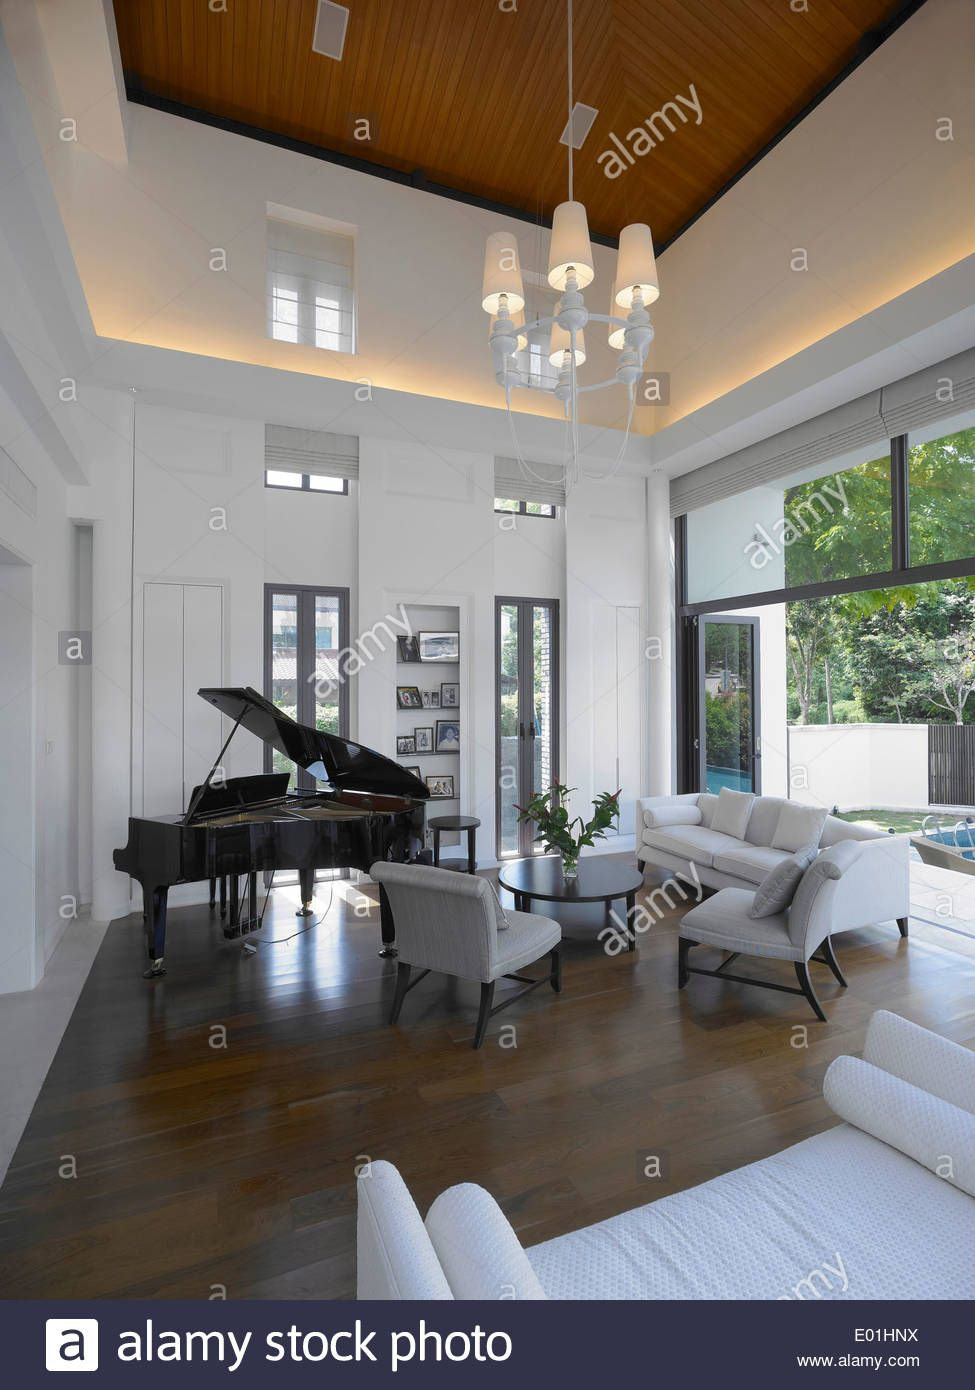 Image Result For Baby Grand Piano Placement In Small Room Home